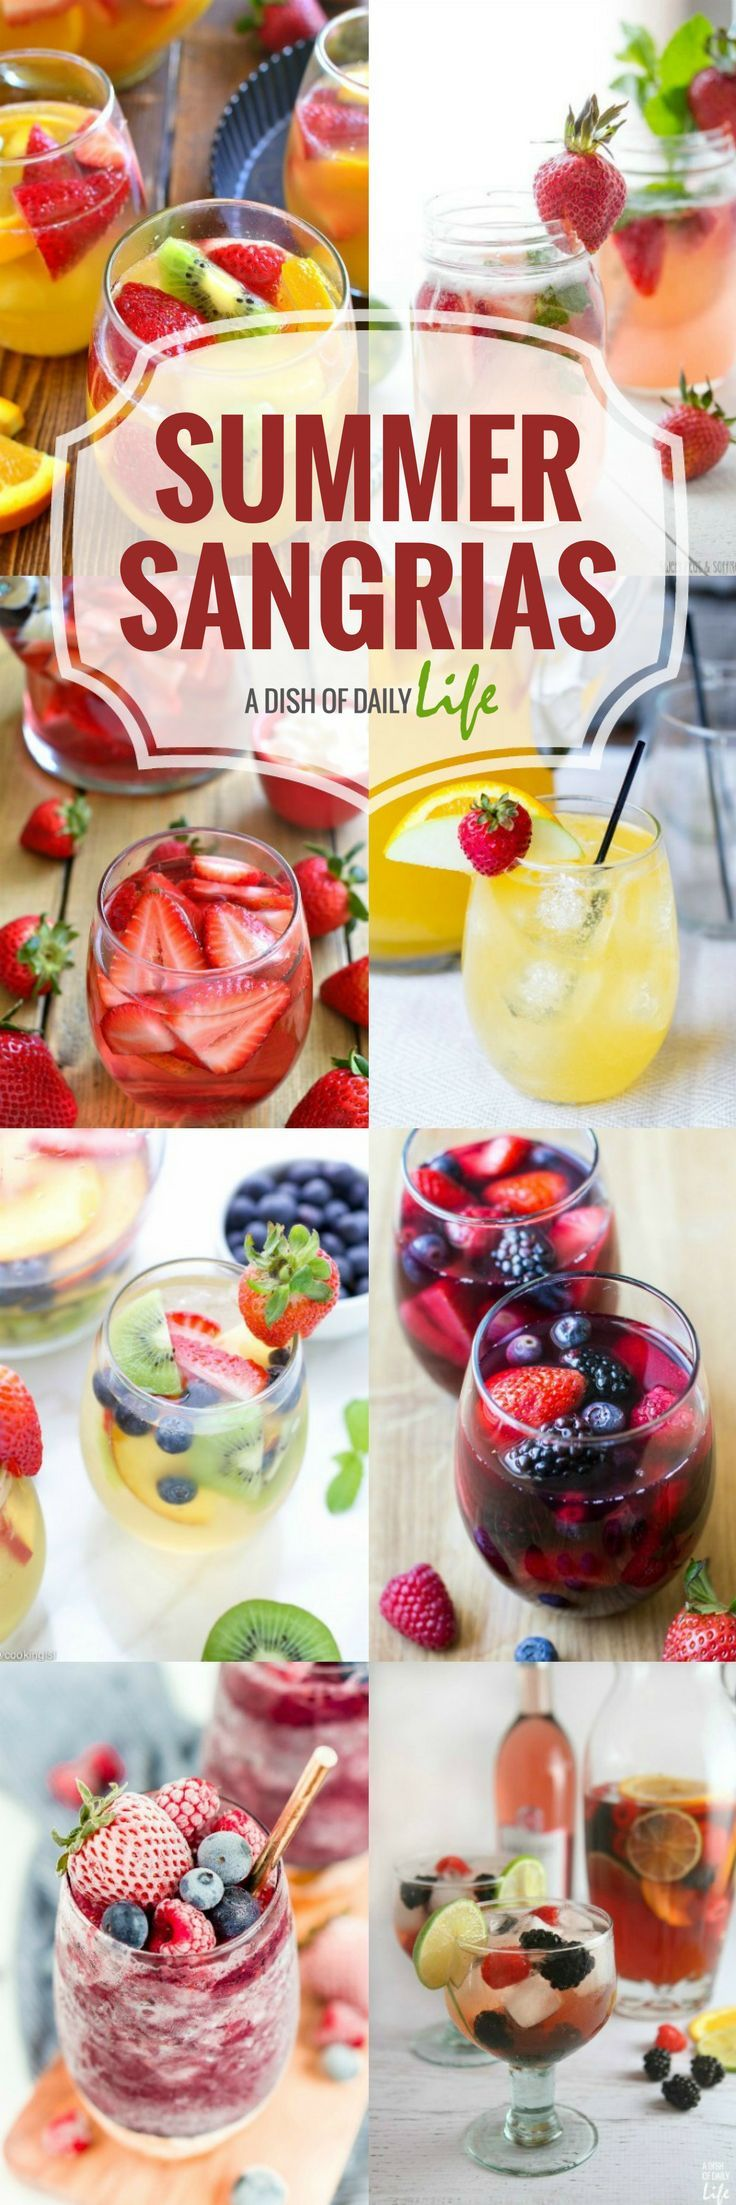 Best Sangria Recipes for Summer #summeralcoholicdrinks